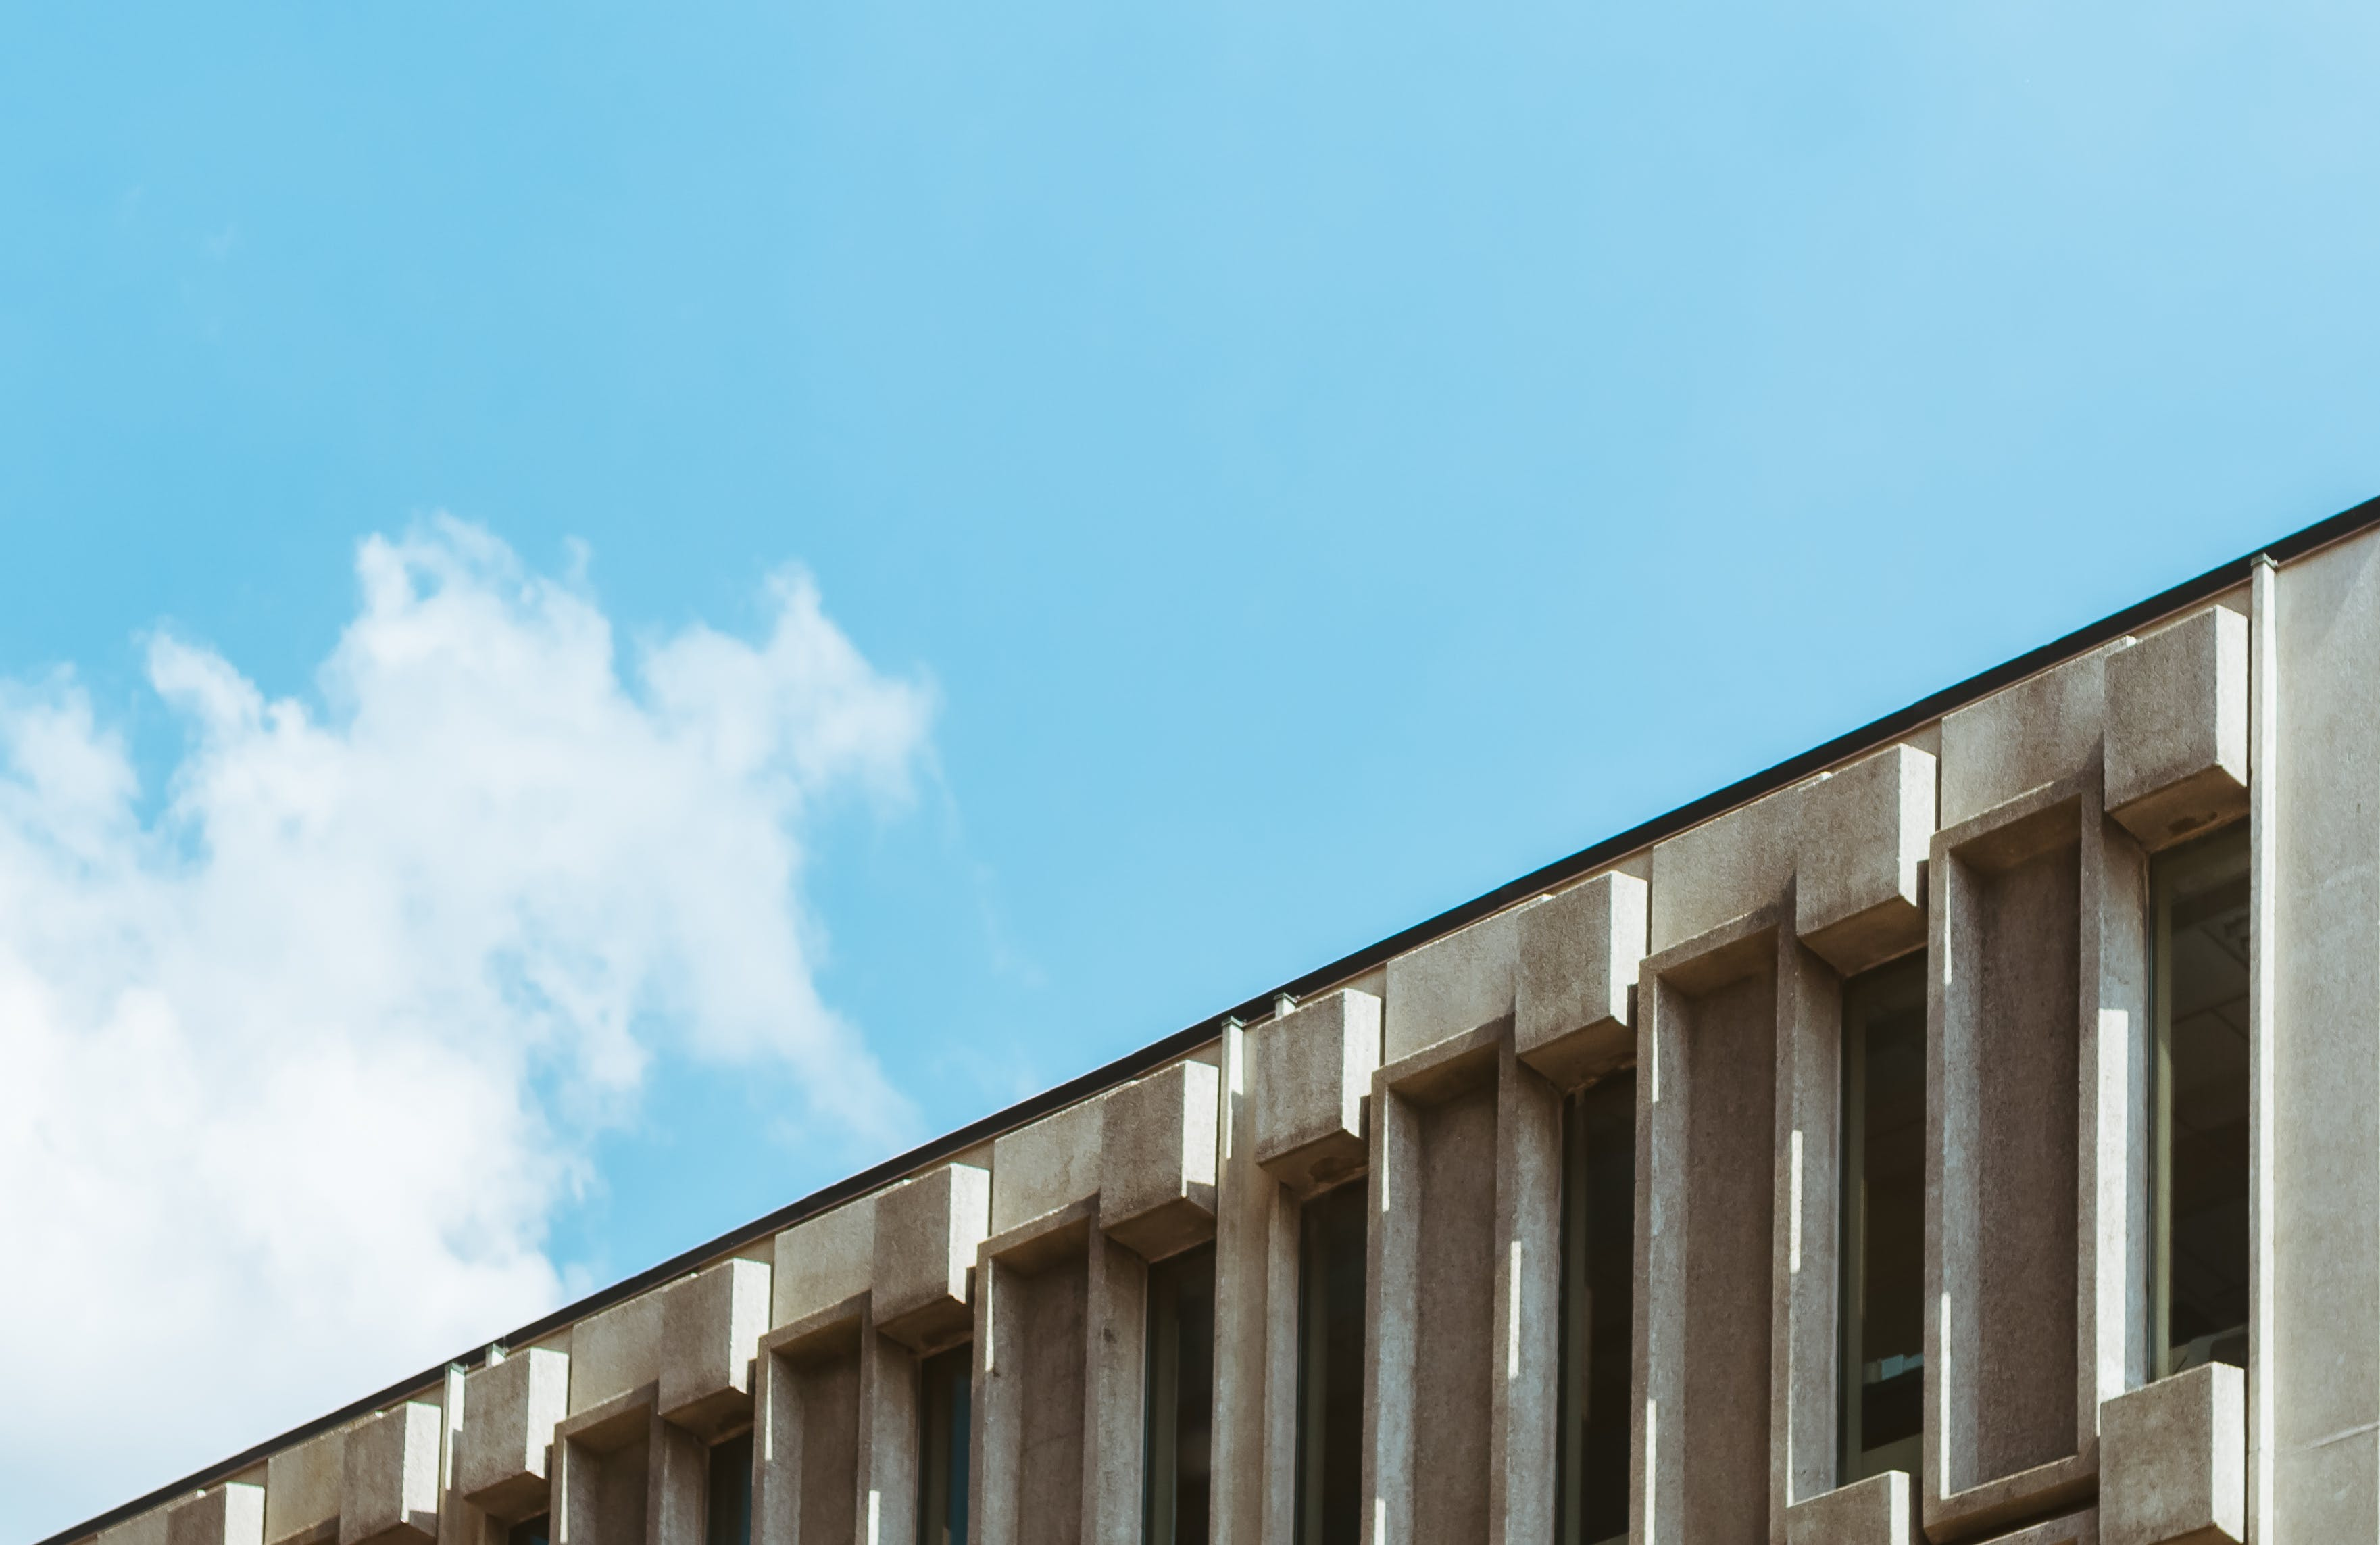 Free stock photo of architectural, architecture, blue sky, building